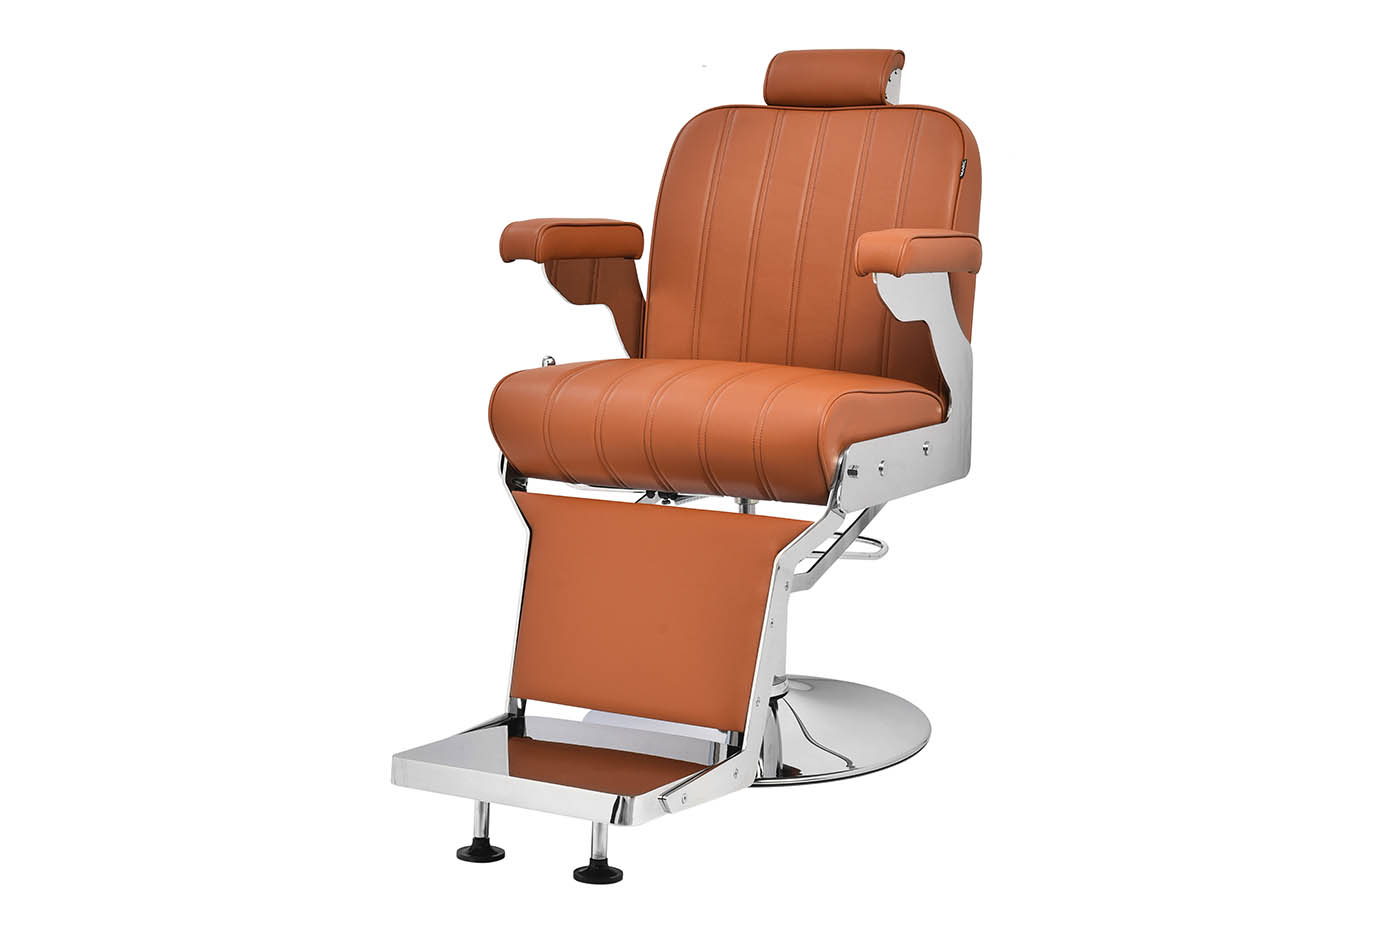 Marc's reliable and functional barber chair